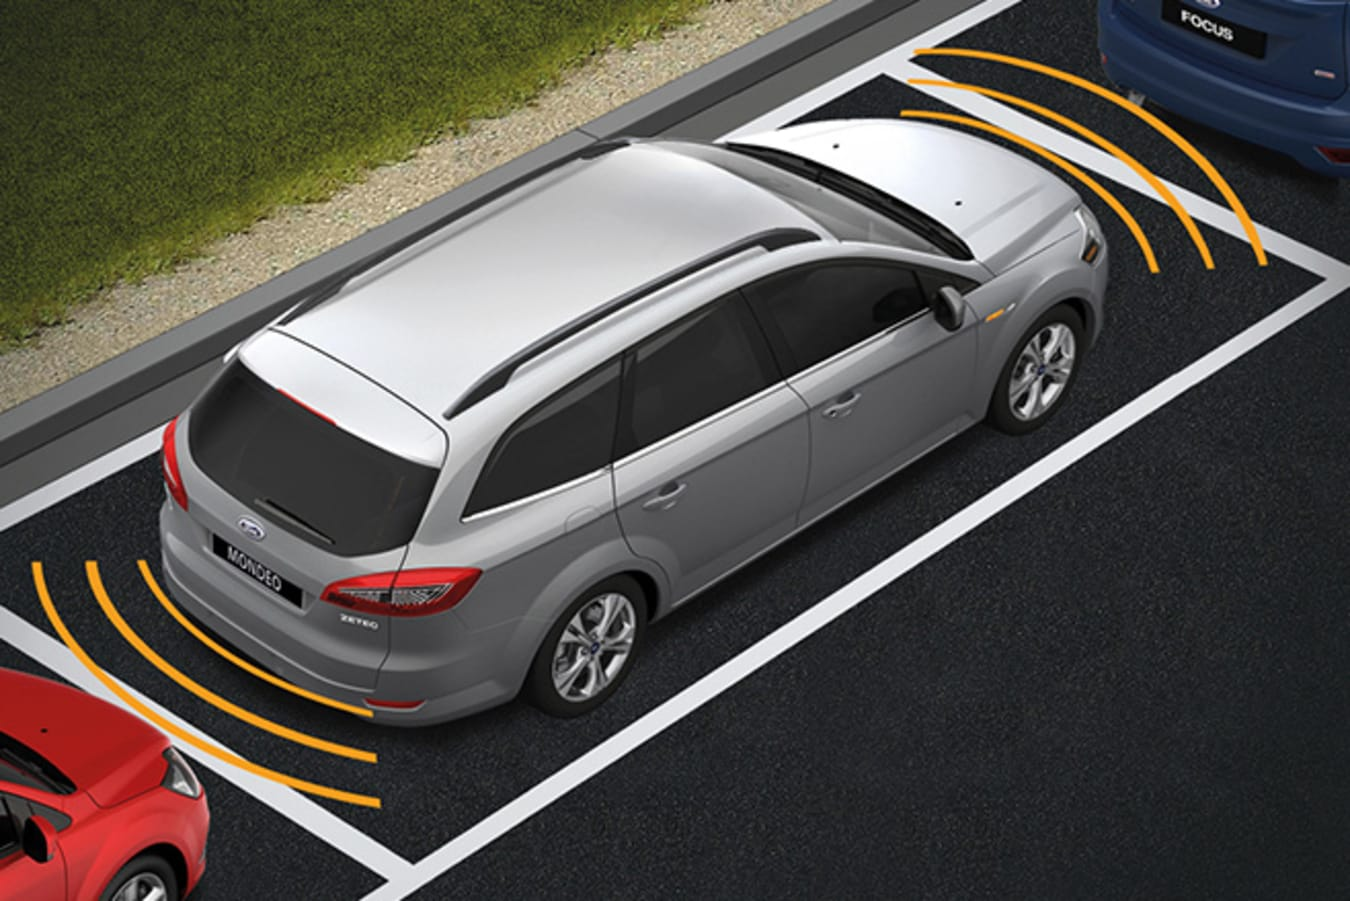 Ford Mondeo Self Parking technology